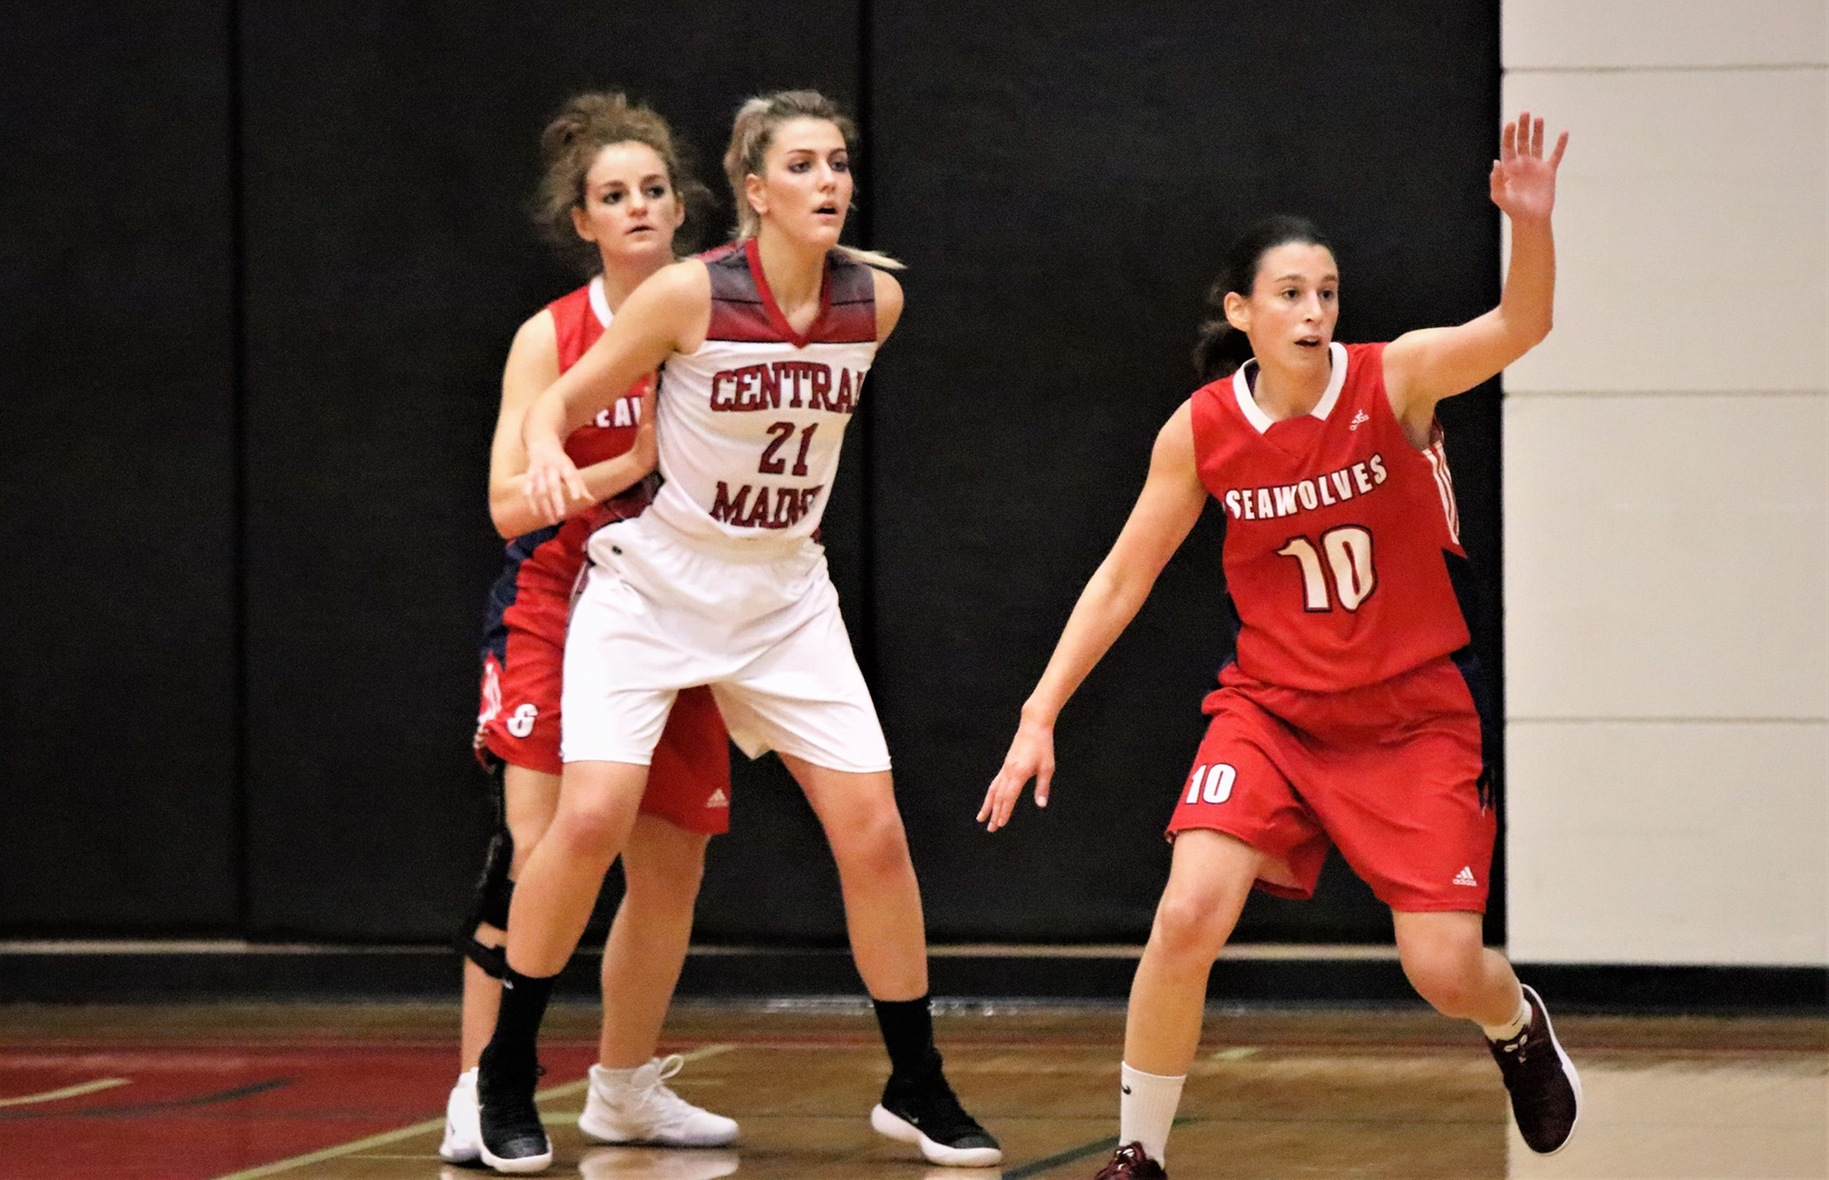 Lady Mustangs stampede UNB - Saint John in 2nd half